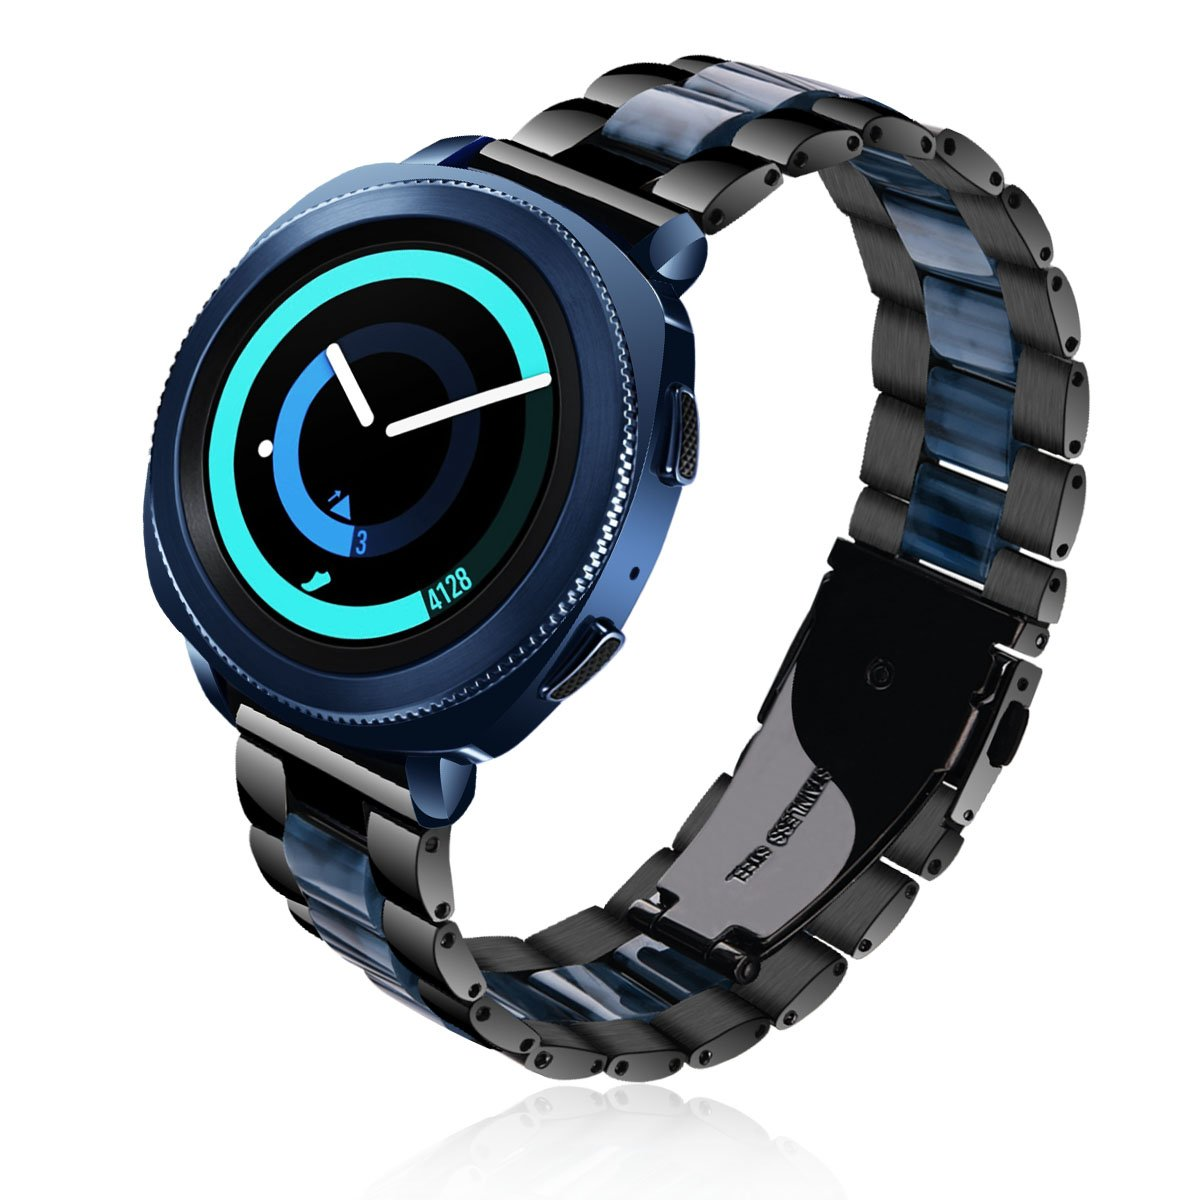 Gear Sport Bands - V-MORO 20MM Black Stainless Steel Men Women Replacement Strap with Blue Resin Bracelet for Samsung Gear Sport Smartwatch SM-R600 and Gear S2 Classic SM-R732/SM-R735 (Black + Blue)